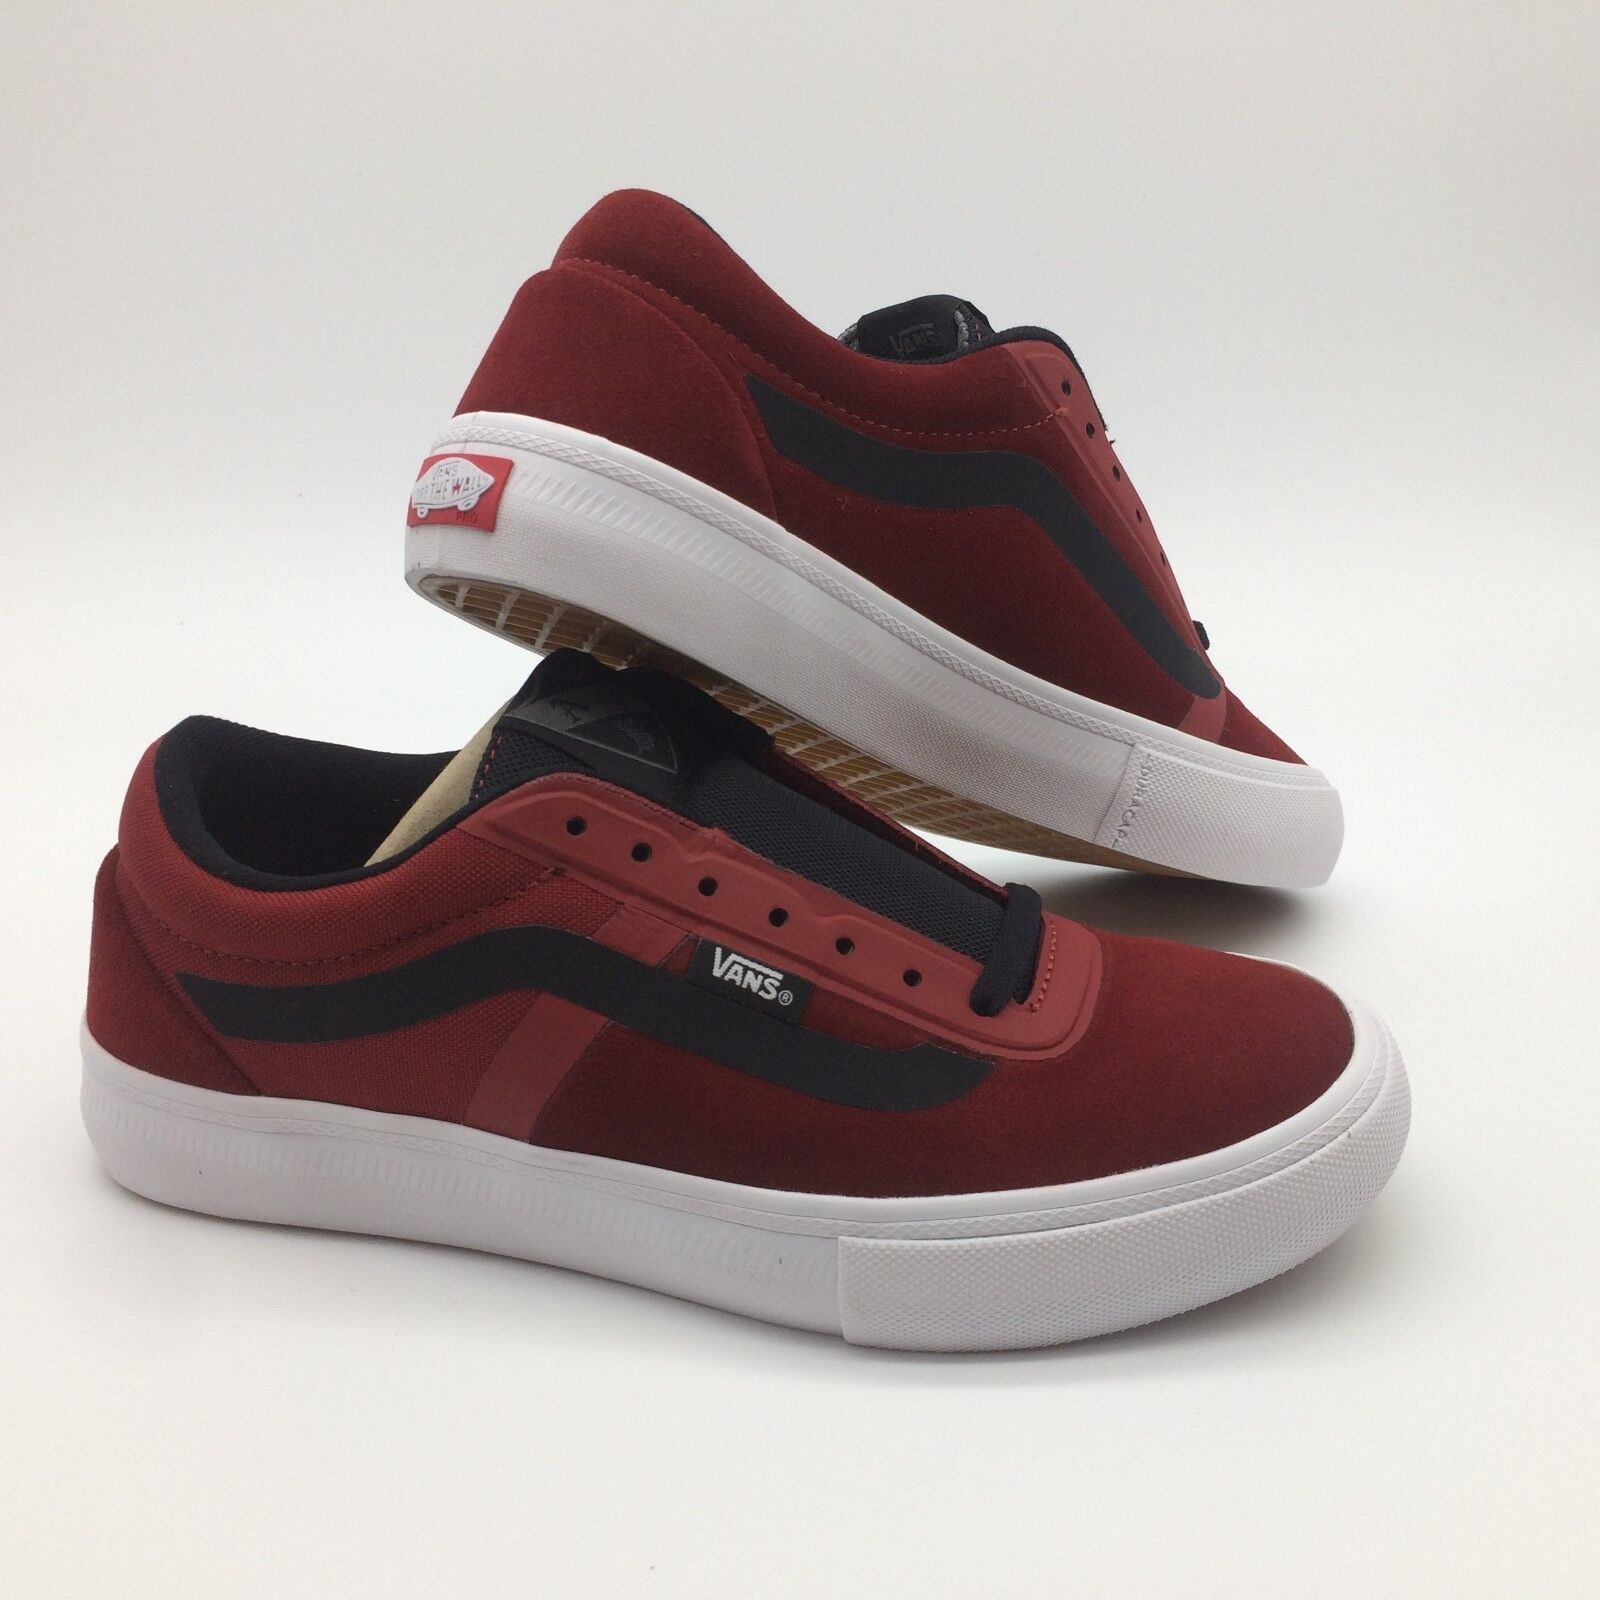 Vans Men's shoes AV Rapidweld pro'' Red Dahlia White